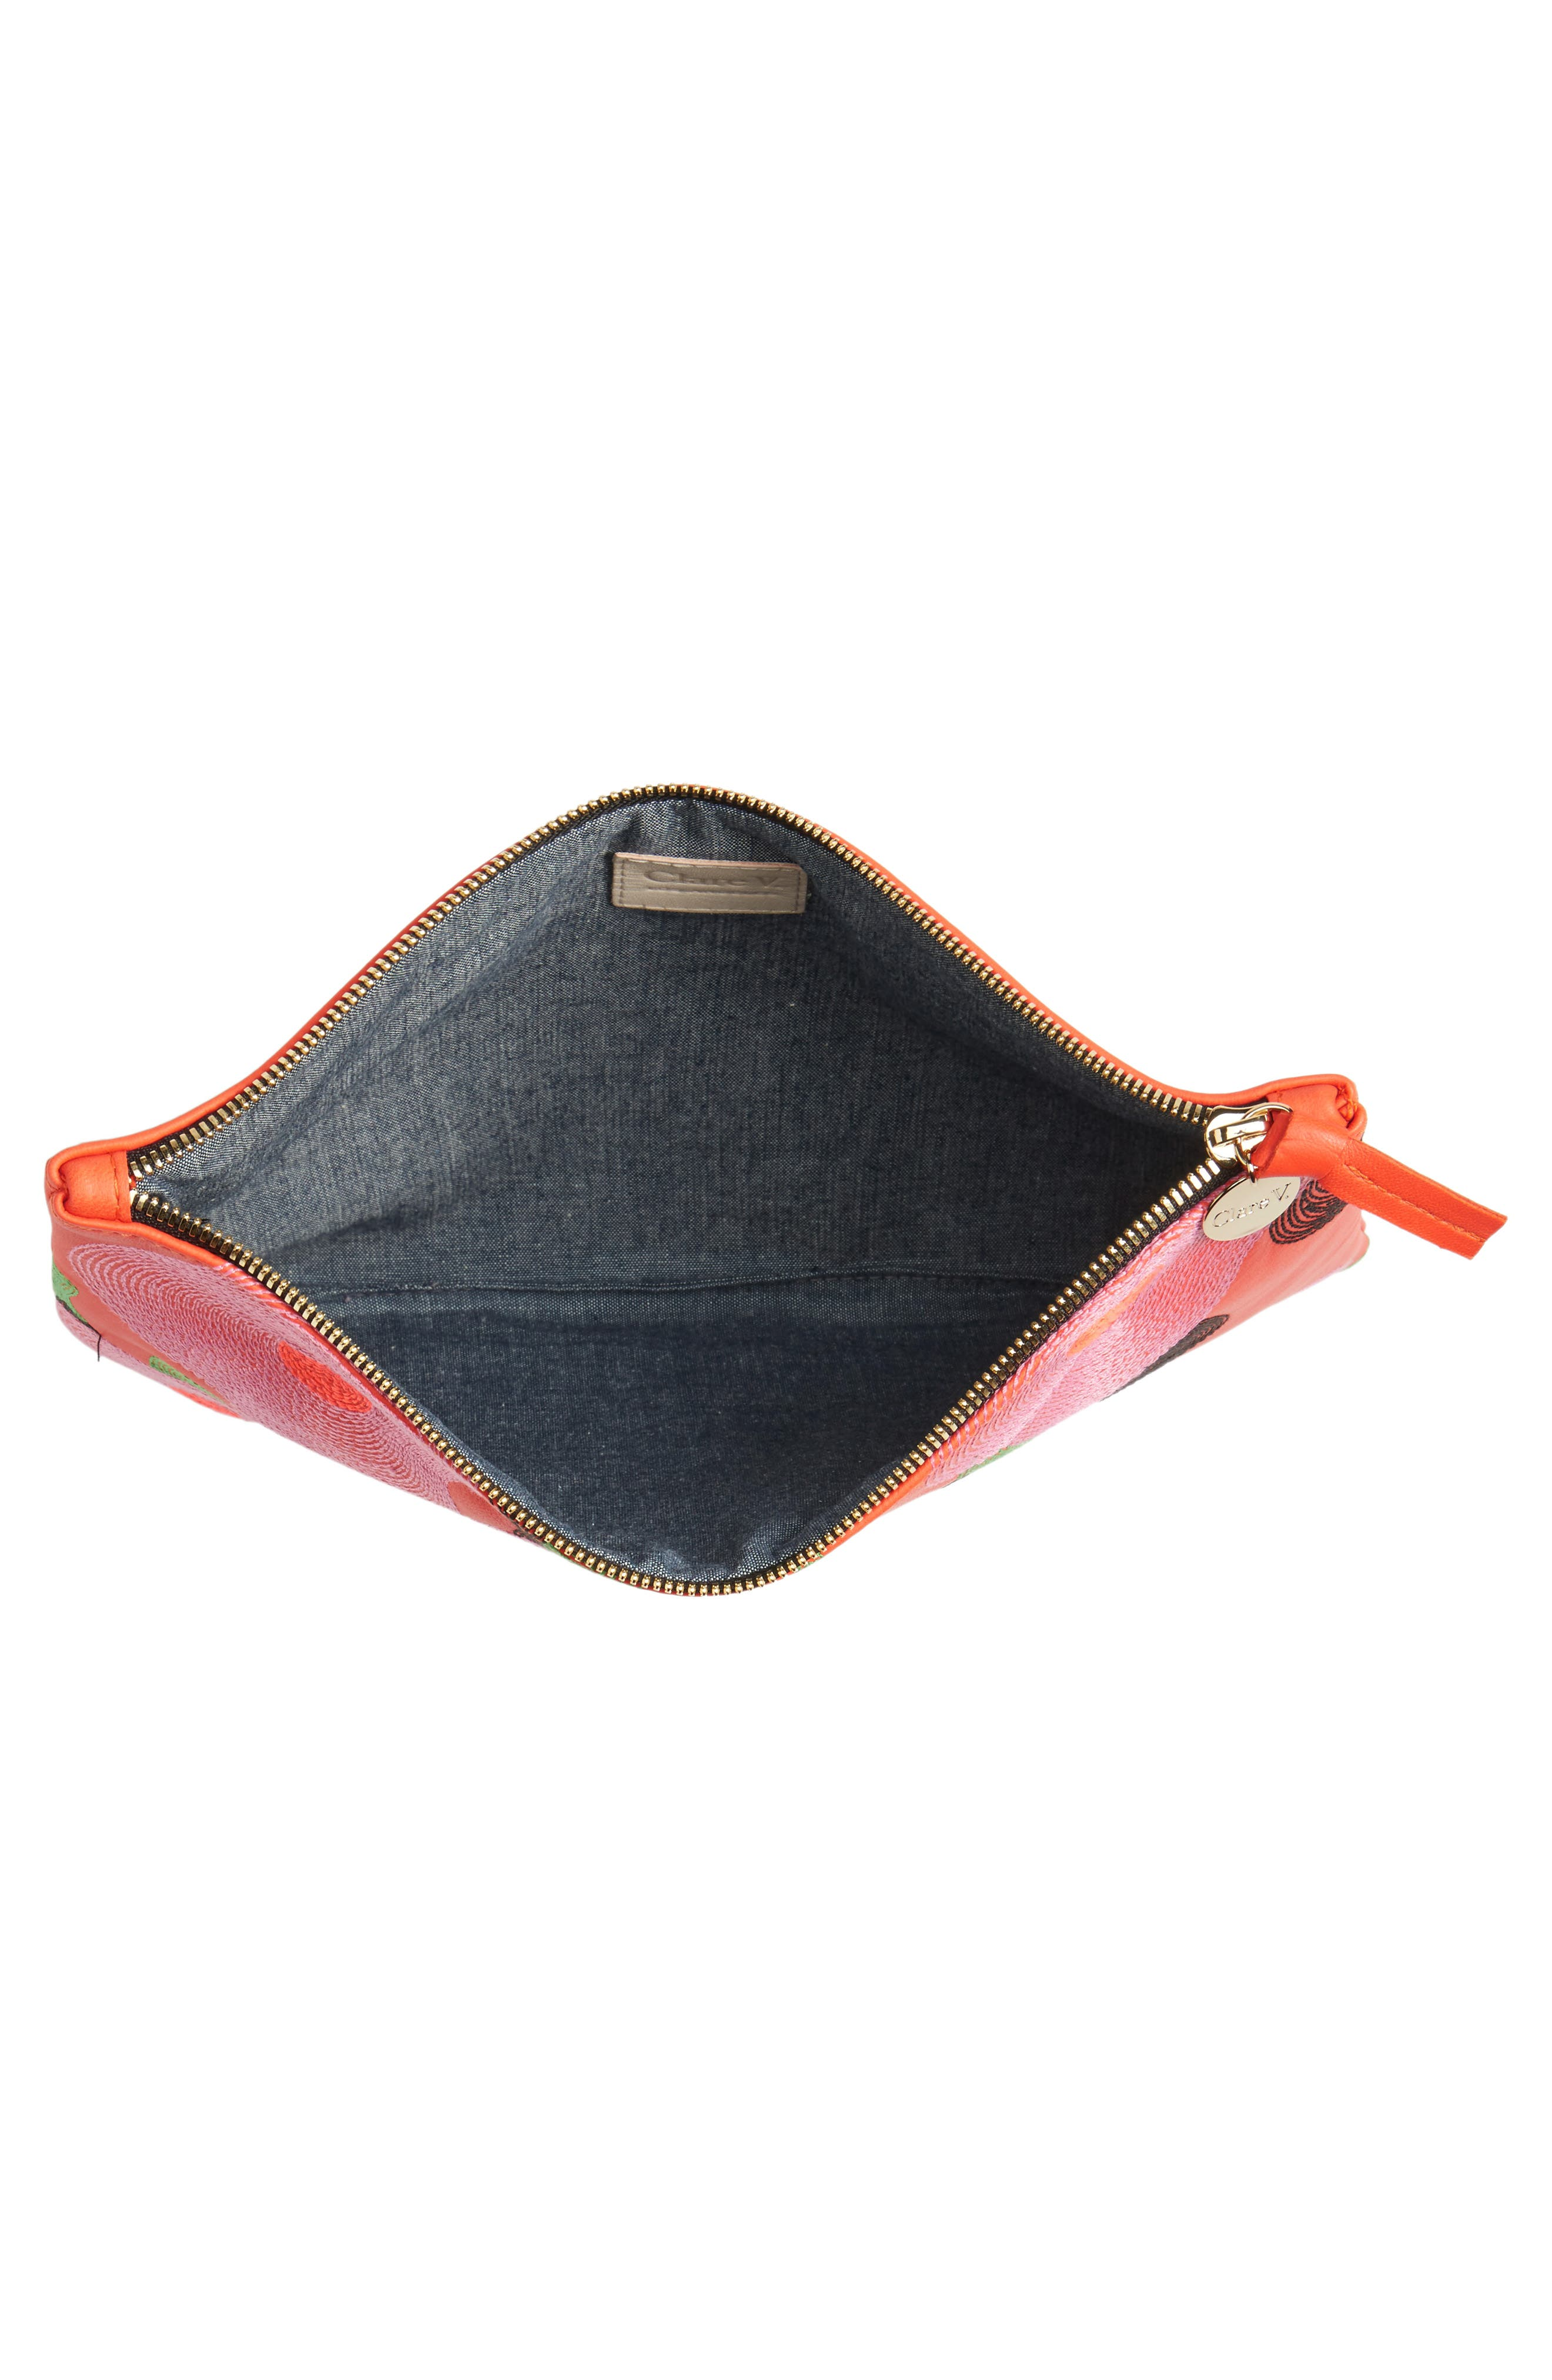 Alternate Image 3  - Clare V. Embroidered Poppy Leather Flat Clutch